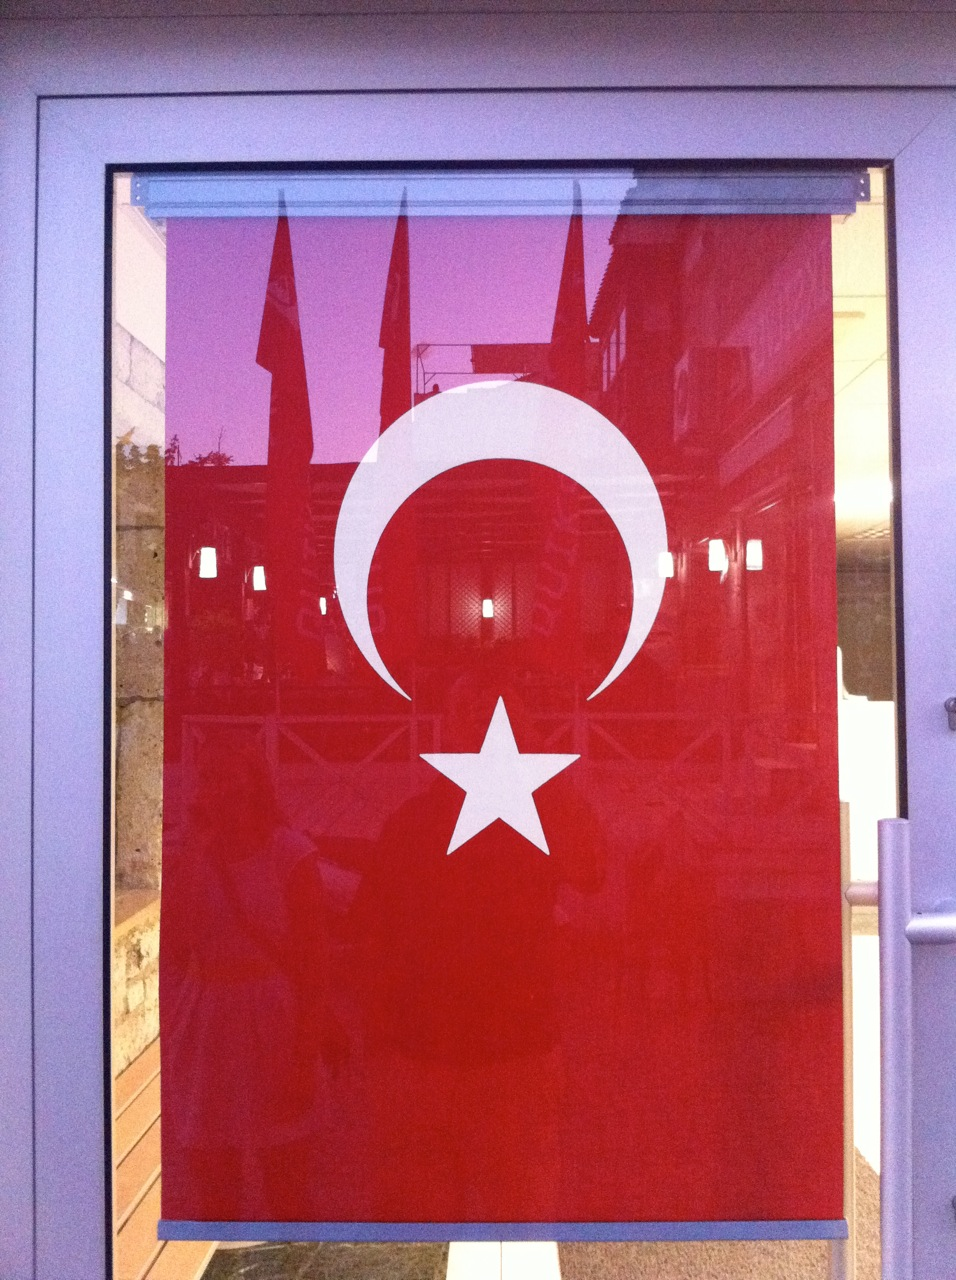 Turkish national flag is a design delight - crisp, clear, single-minded, and distinctly visible, everywhere. An effective carrier of visual identity.